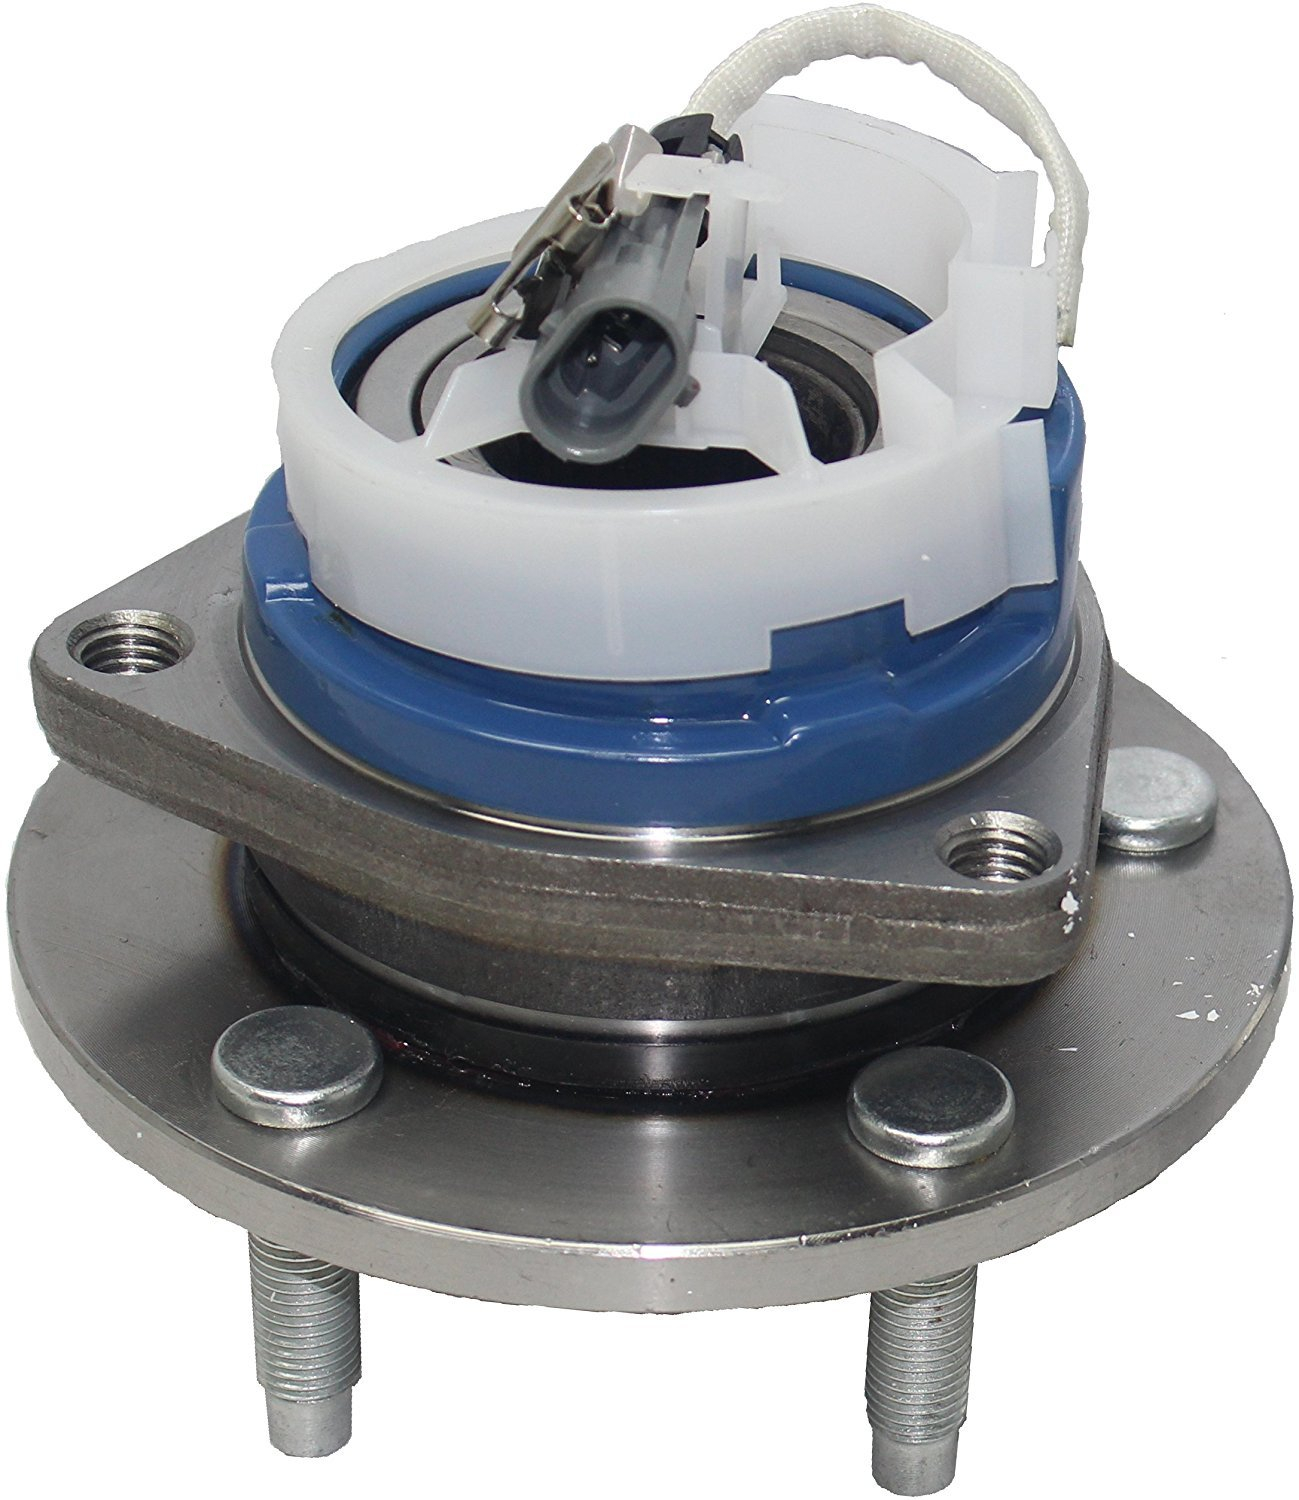 Detroit Axle Prime - Front Wheel Hub and Bearing Assembly For Fits Allure, Aurora, Bonnevile, Century, Impala 5 Lug W/ABS